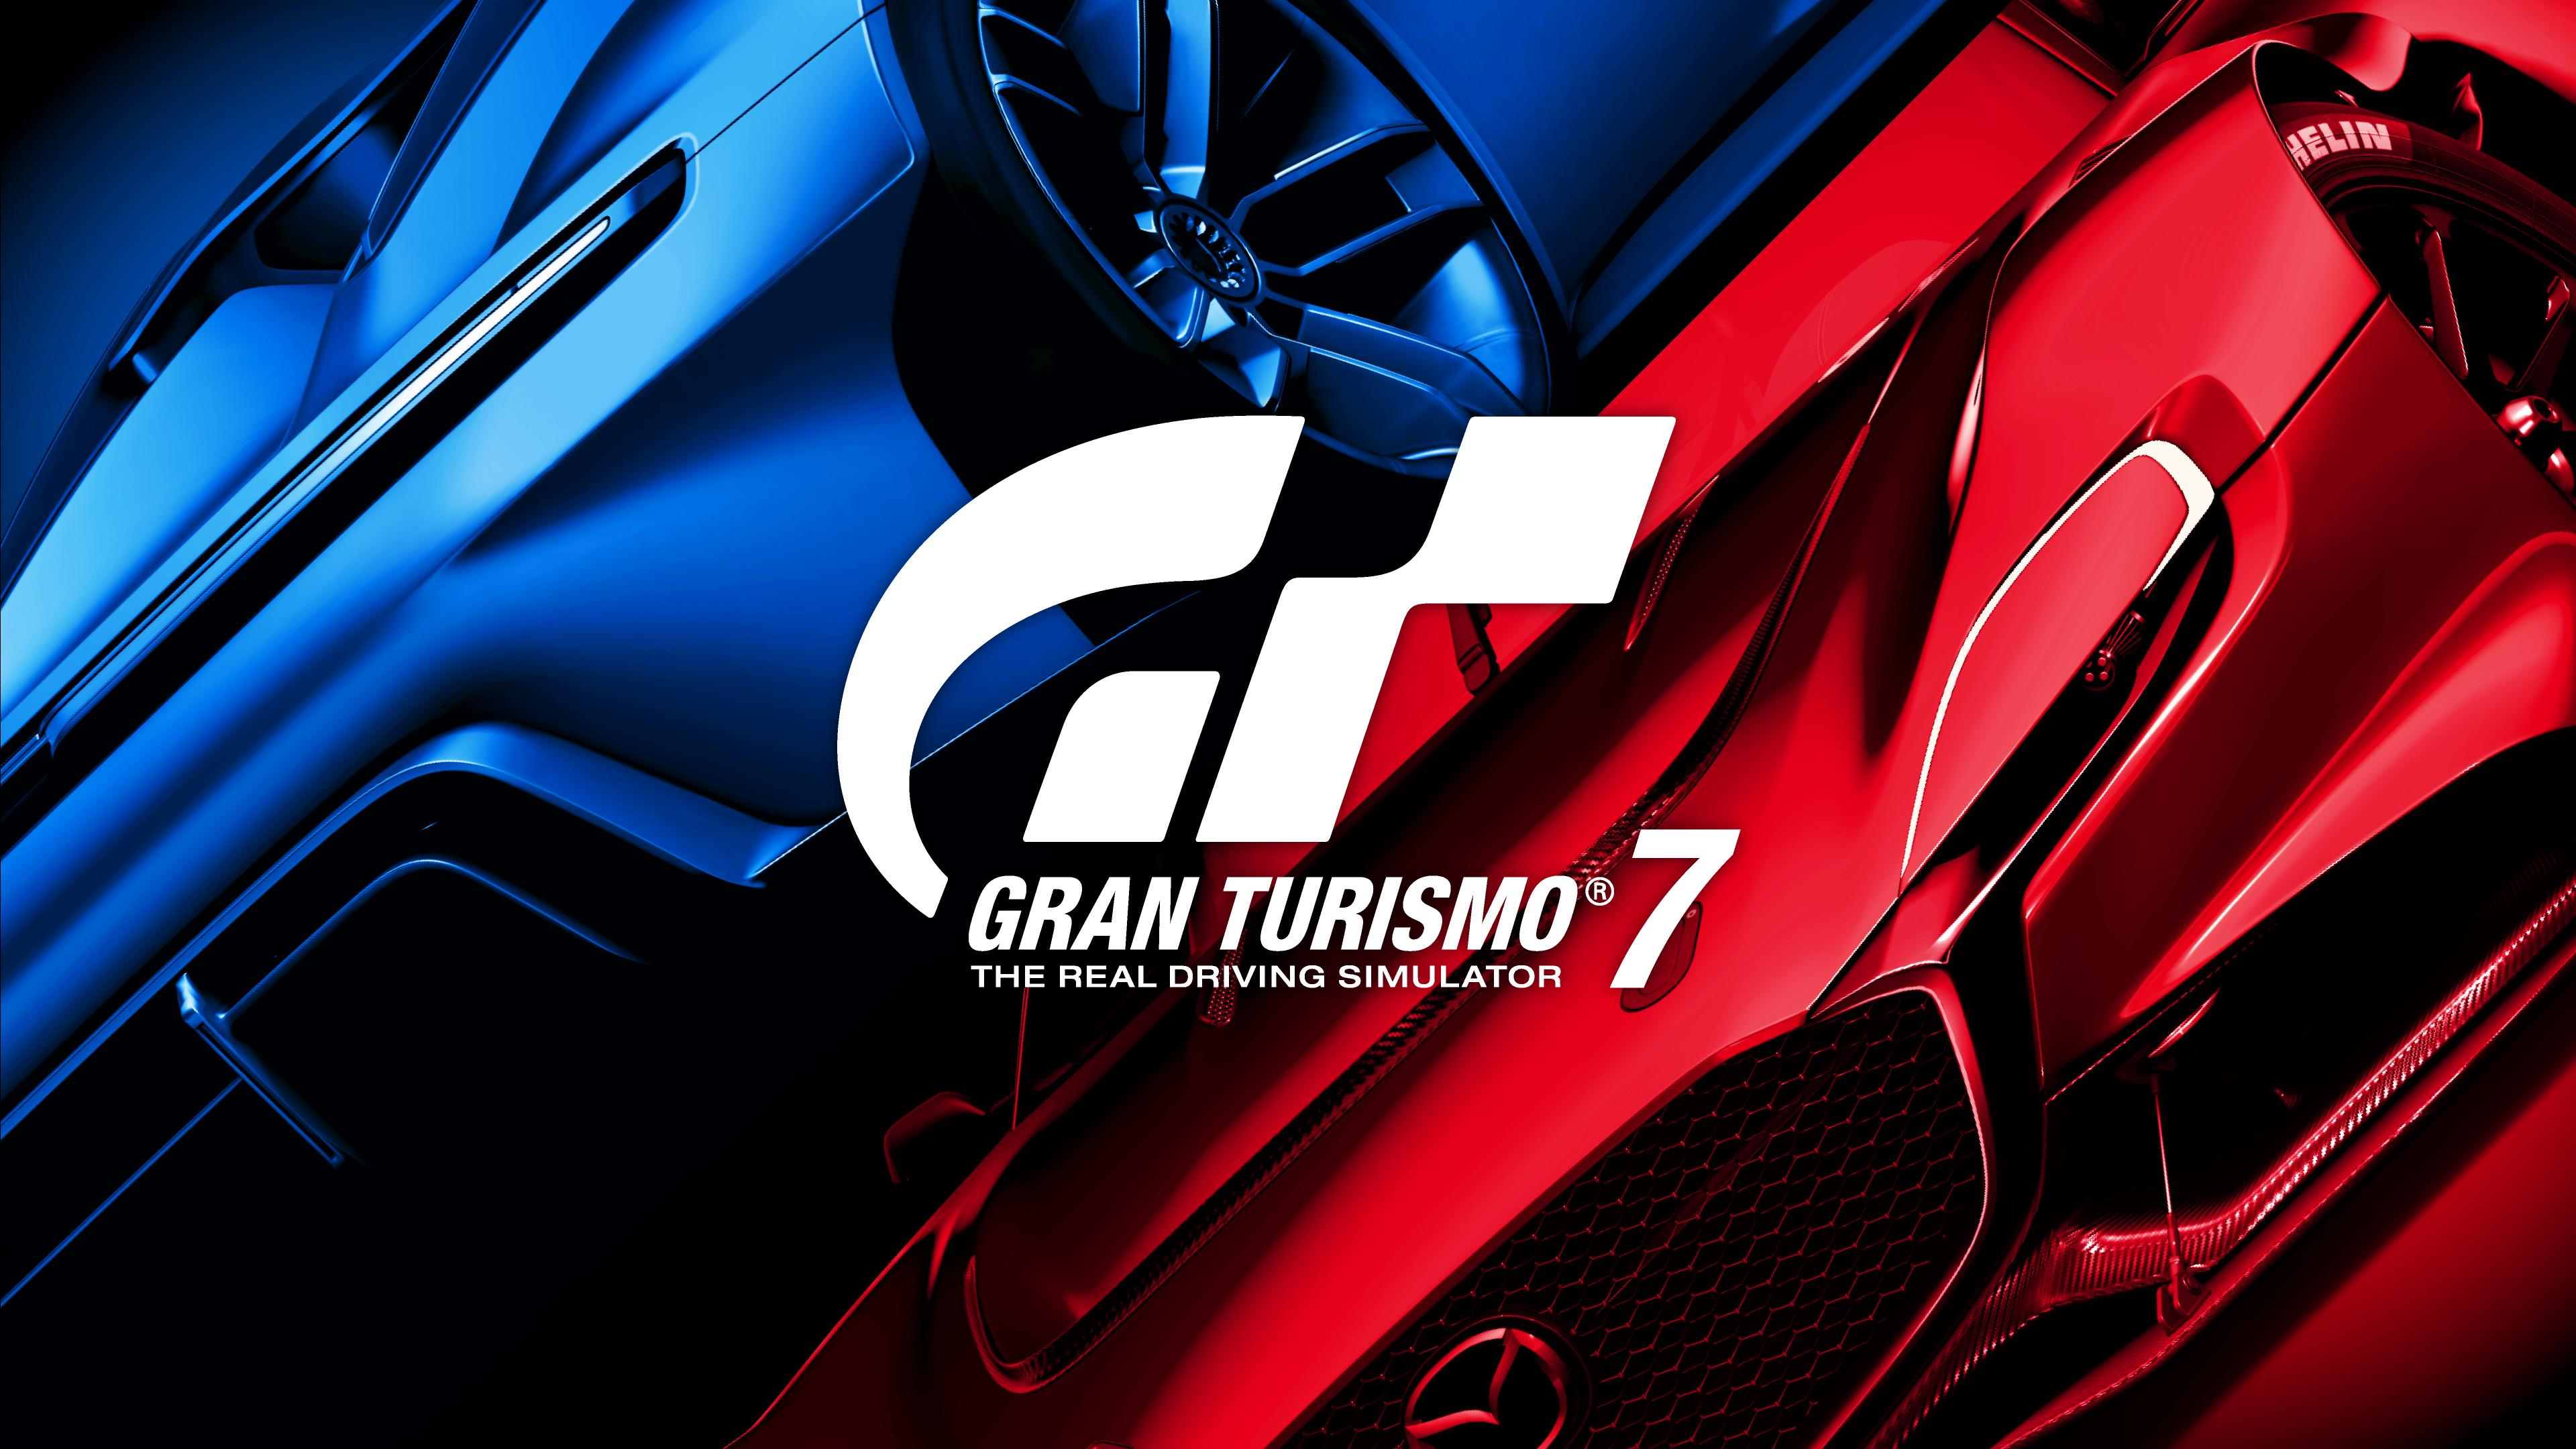 Picture with tags: HD, Games, Gaming, Gran Turismo 7